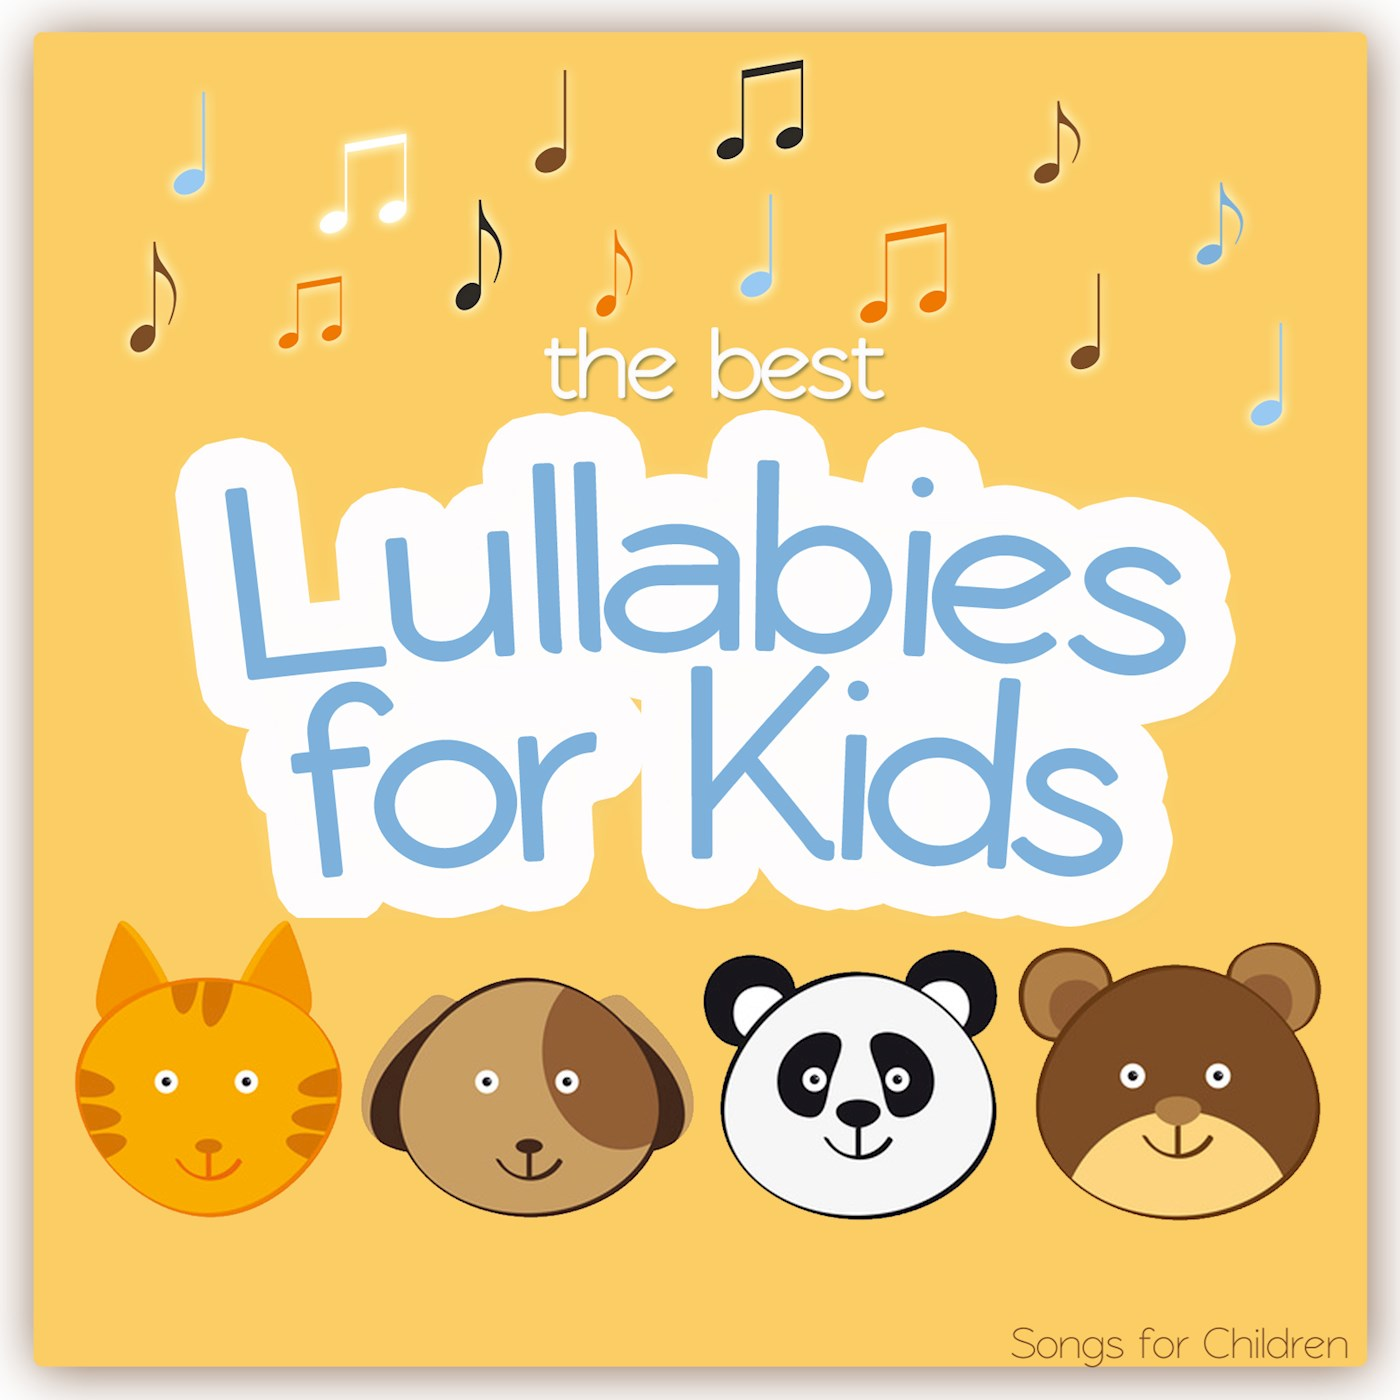 the best Lullabies for Kids